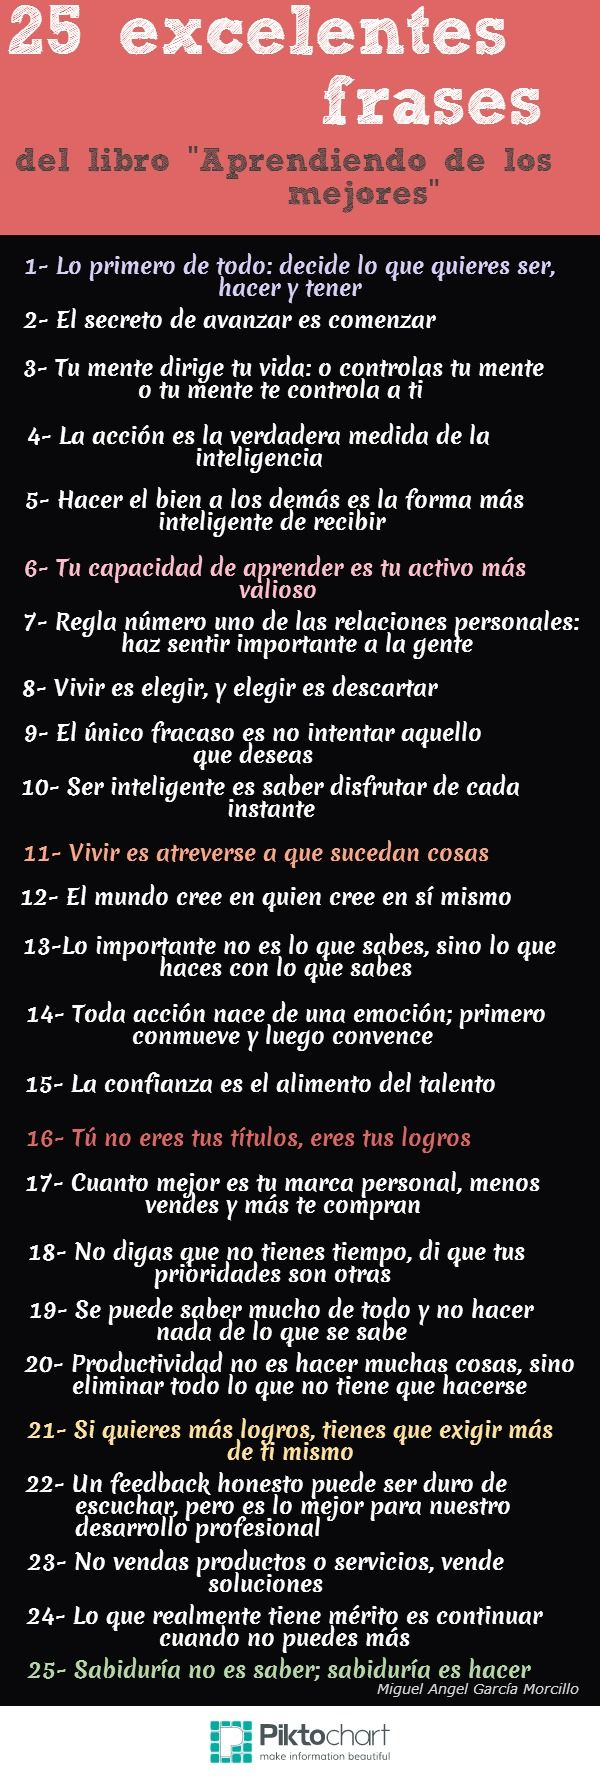 29 best Frases y pensamientos images on Pinterest | Spanish quotes ...